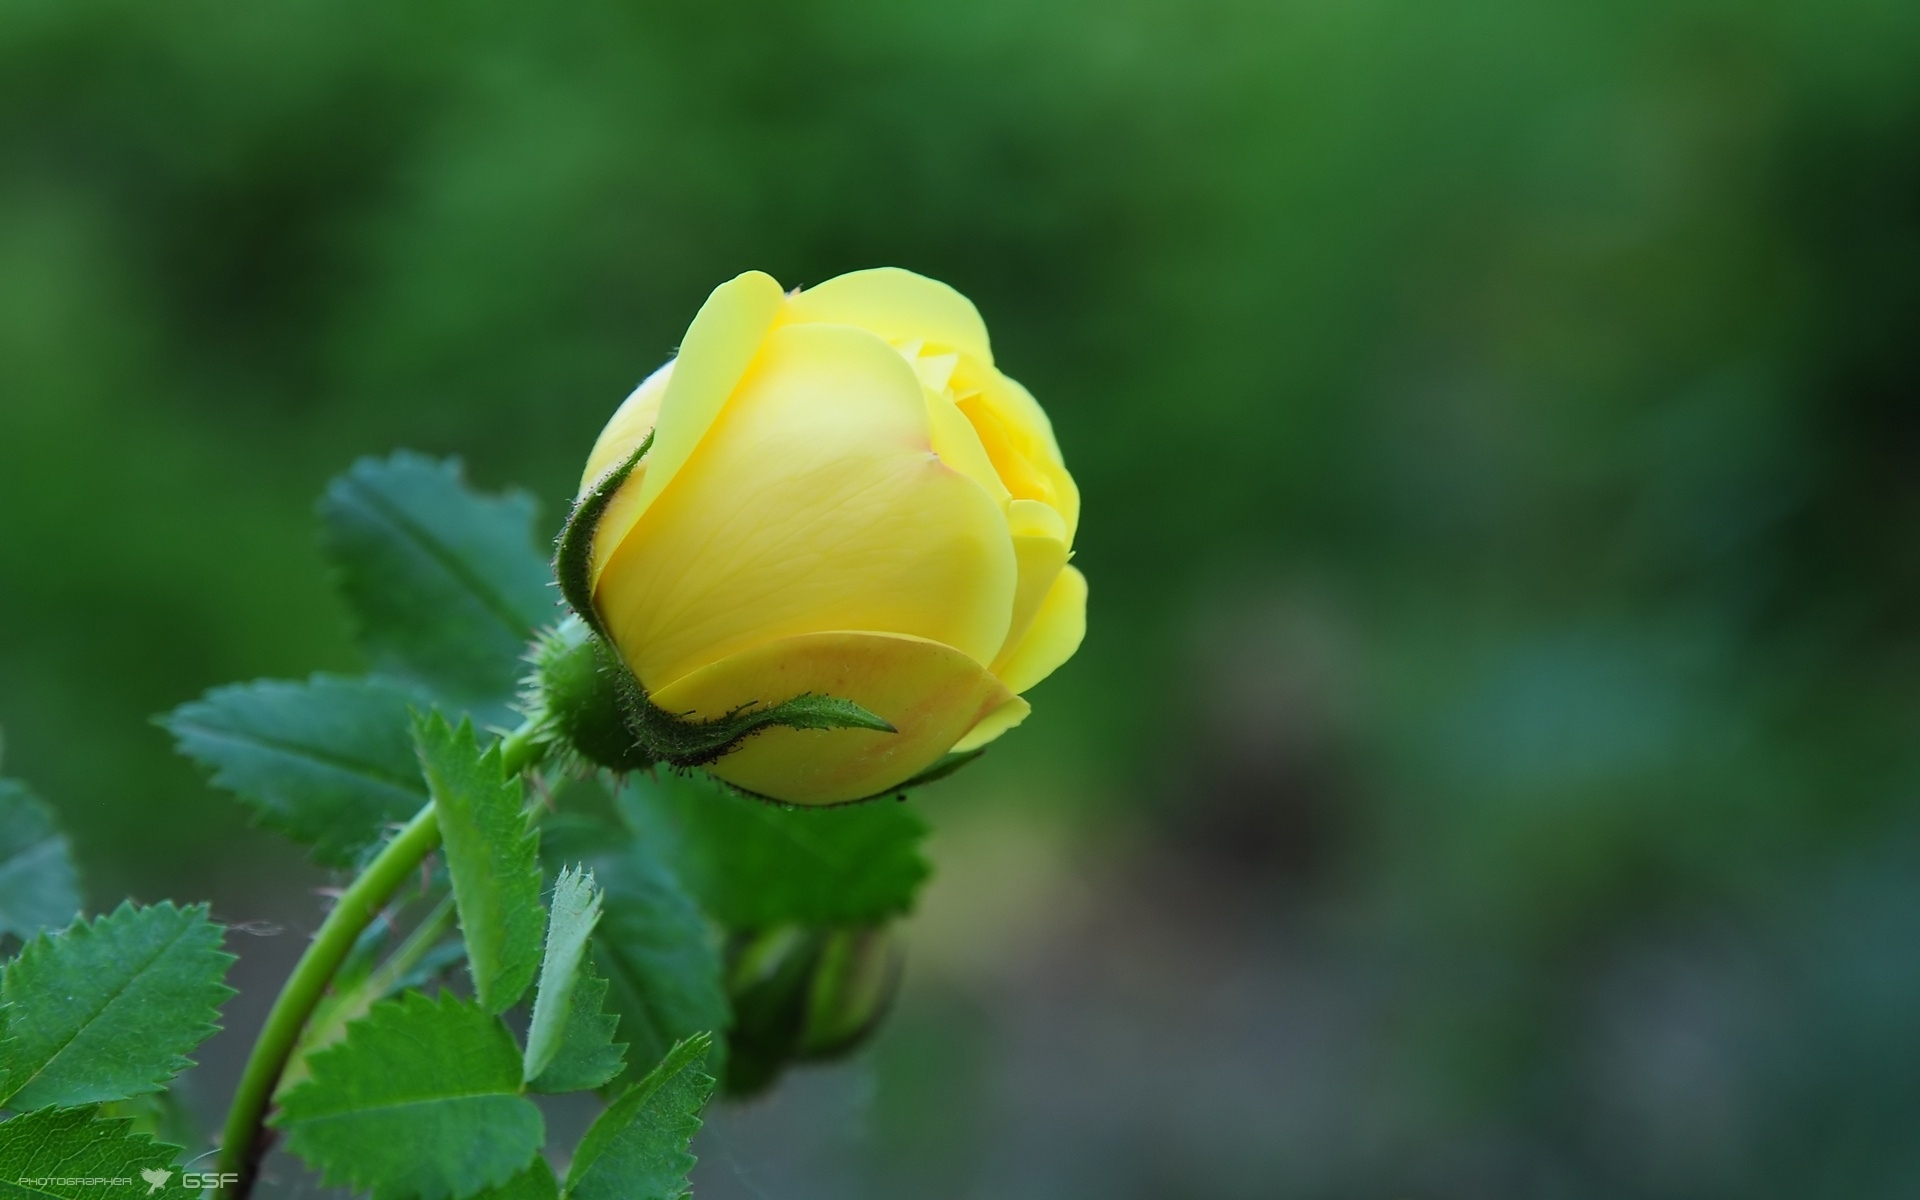 Yellow Roses Images Yellow Rose Wallpaper Download The Free 1920x1200